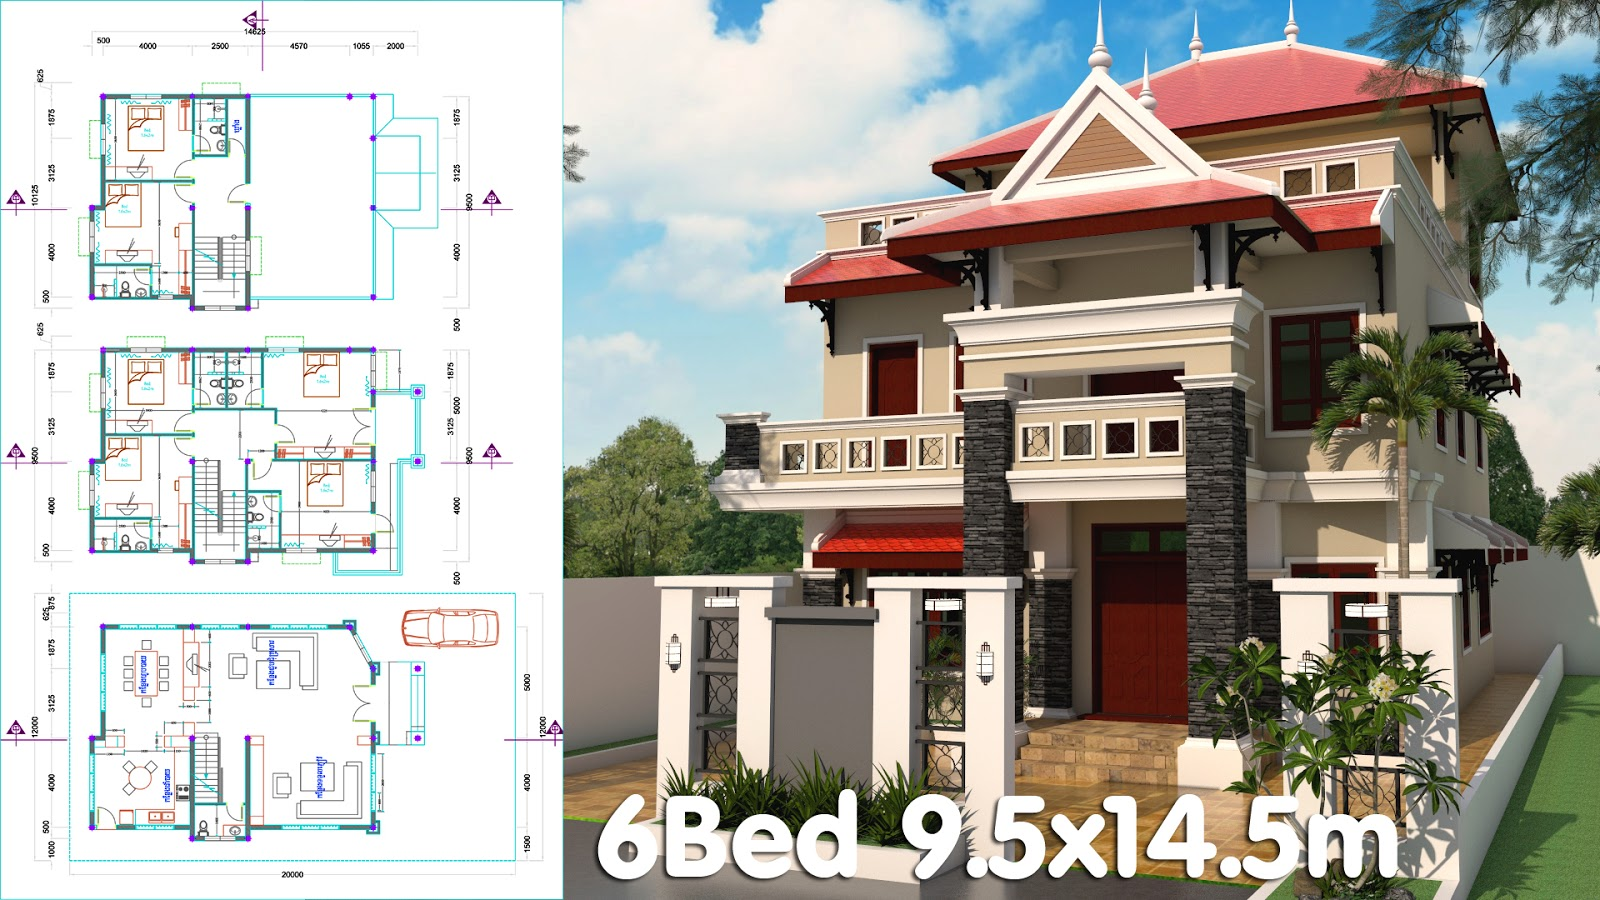 3 Story House Plan 9 5x14 5m With 6 Bedrooms Ma House Plan